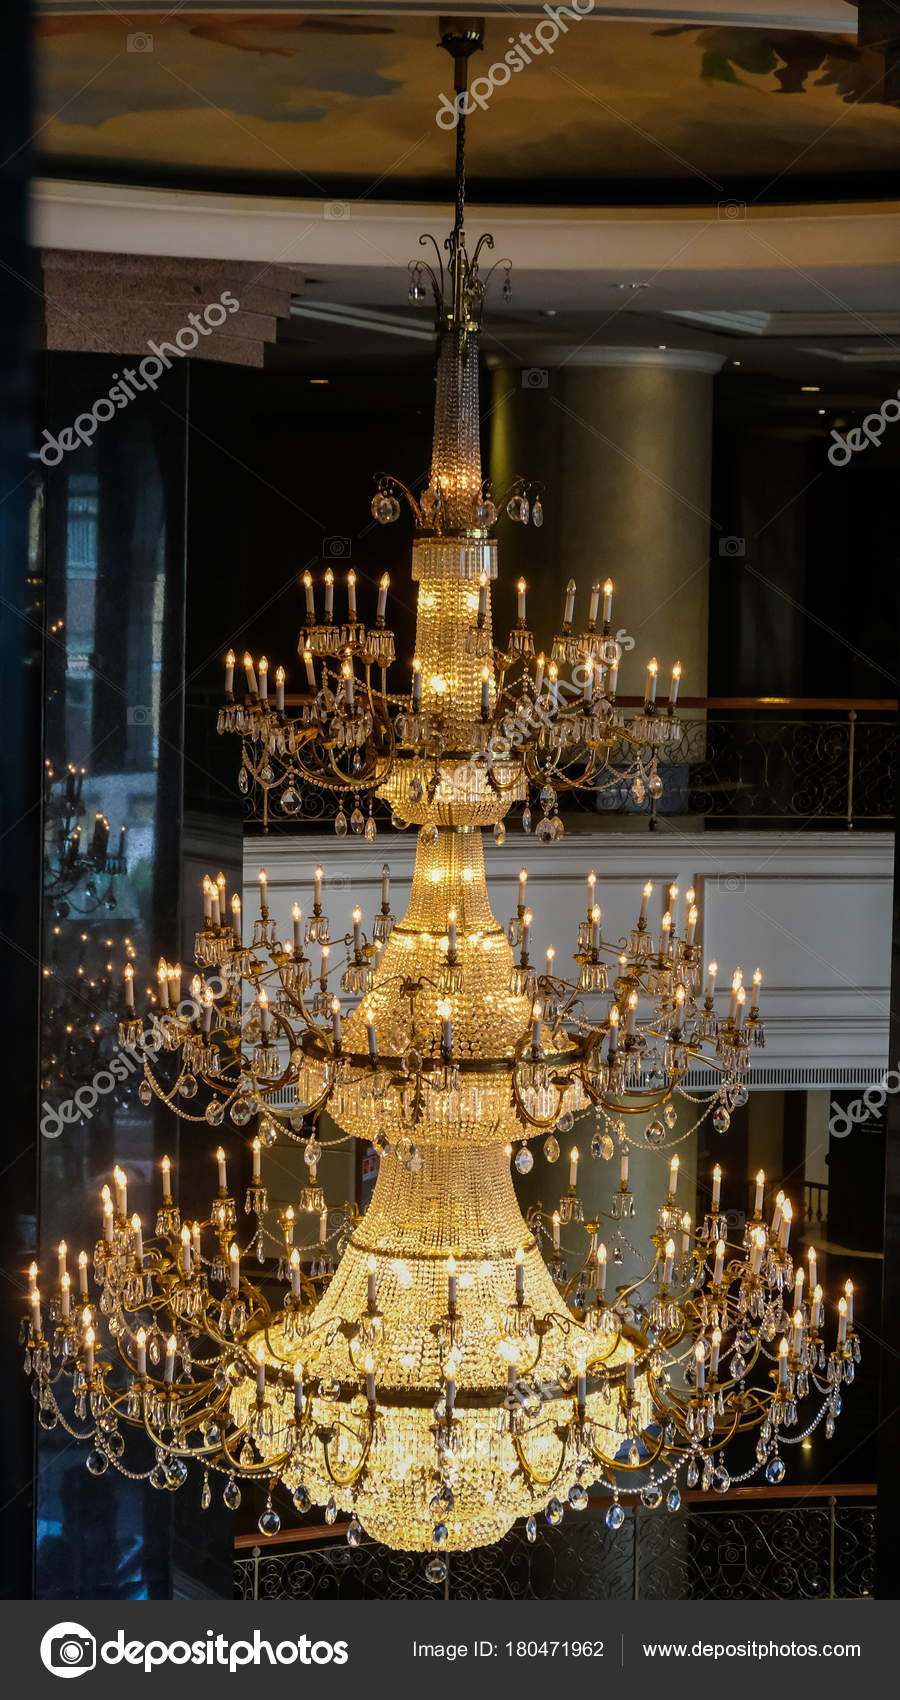 Elegant crystal chandelier stock photo subinpumsom 180471962 elegant crystal chandelier stock photo 180471962 arubaitofo Choice Image